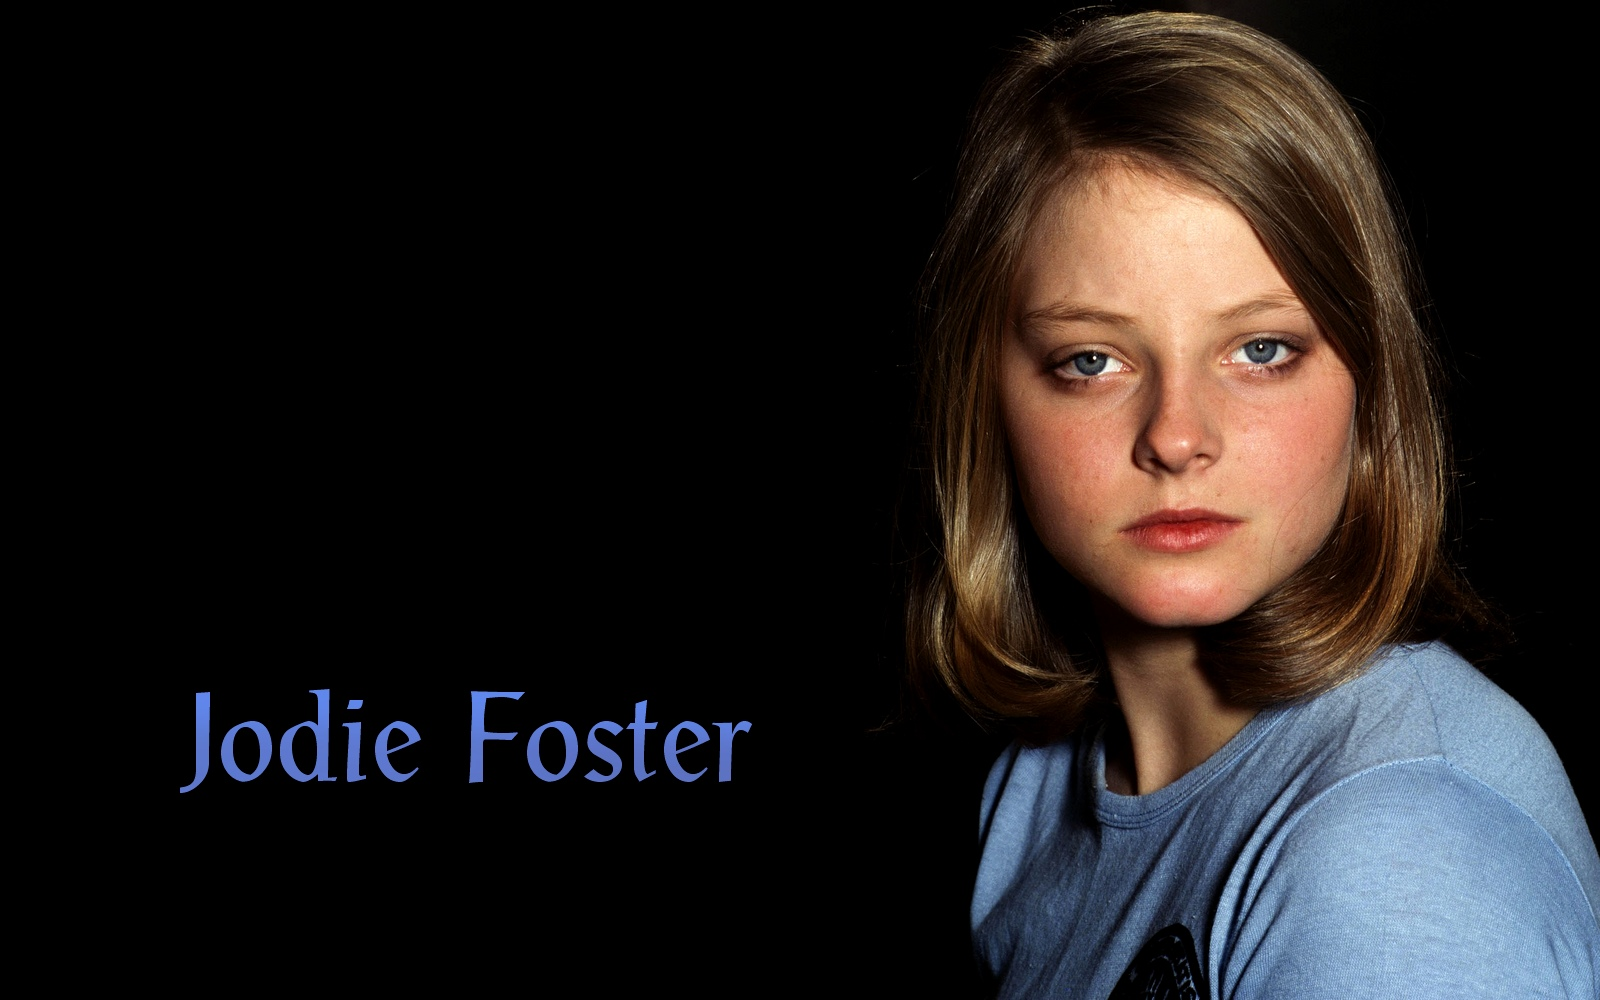 1600x1000 - Jodie Foster Wallpapers 10